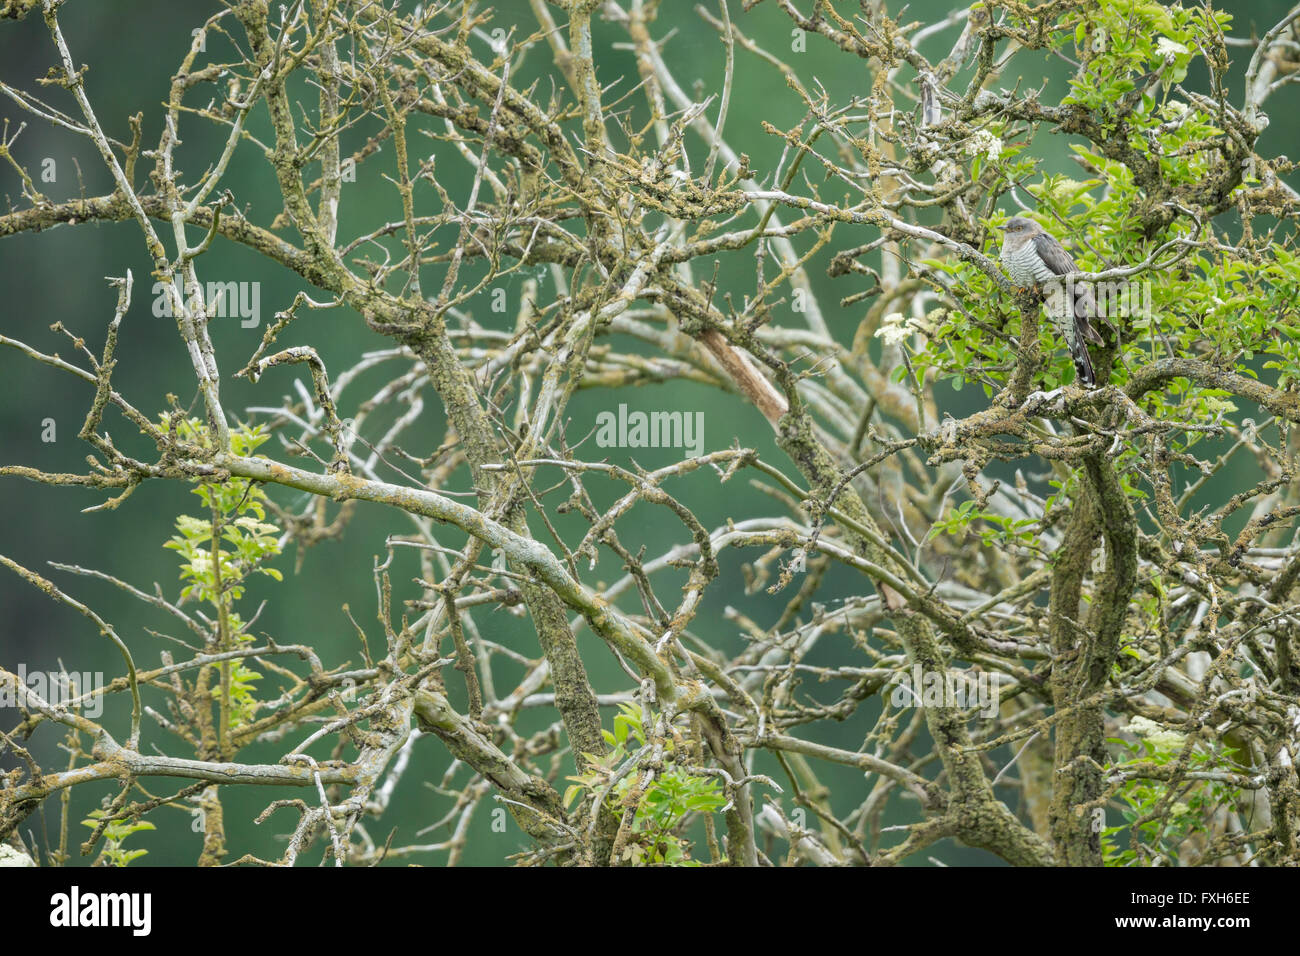 Common cuckoo Cuculus canorus, adult female, perched in lichen-covered tree, Lakenheath Fen, Suffolk, UK in June. - Stock Image